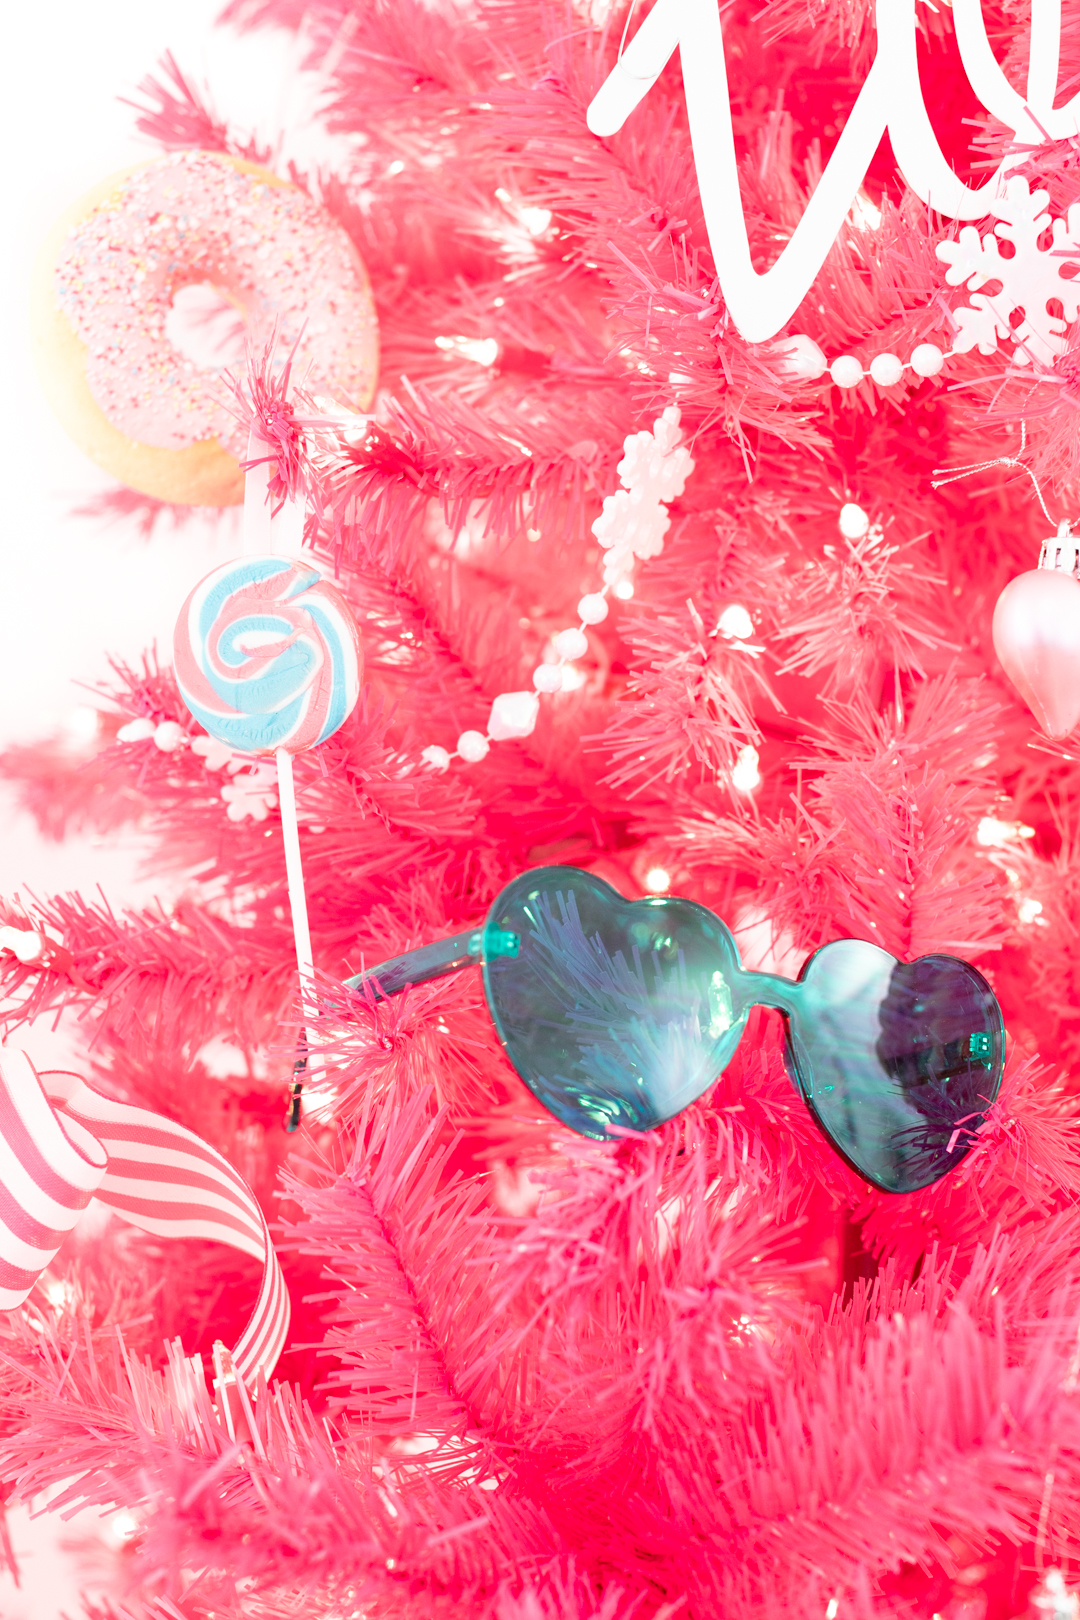 real lollipop made into an ornament